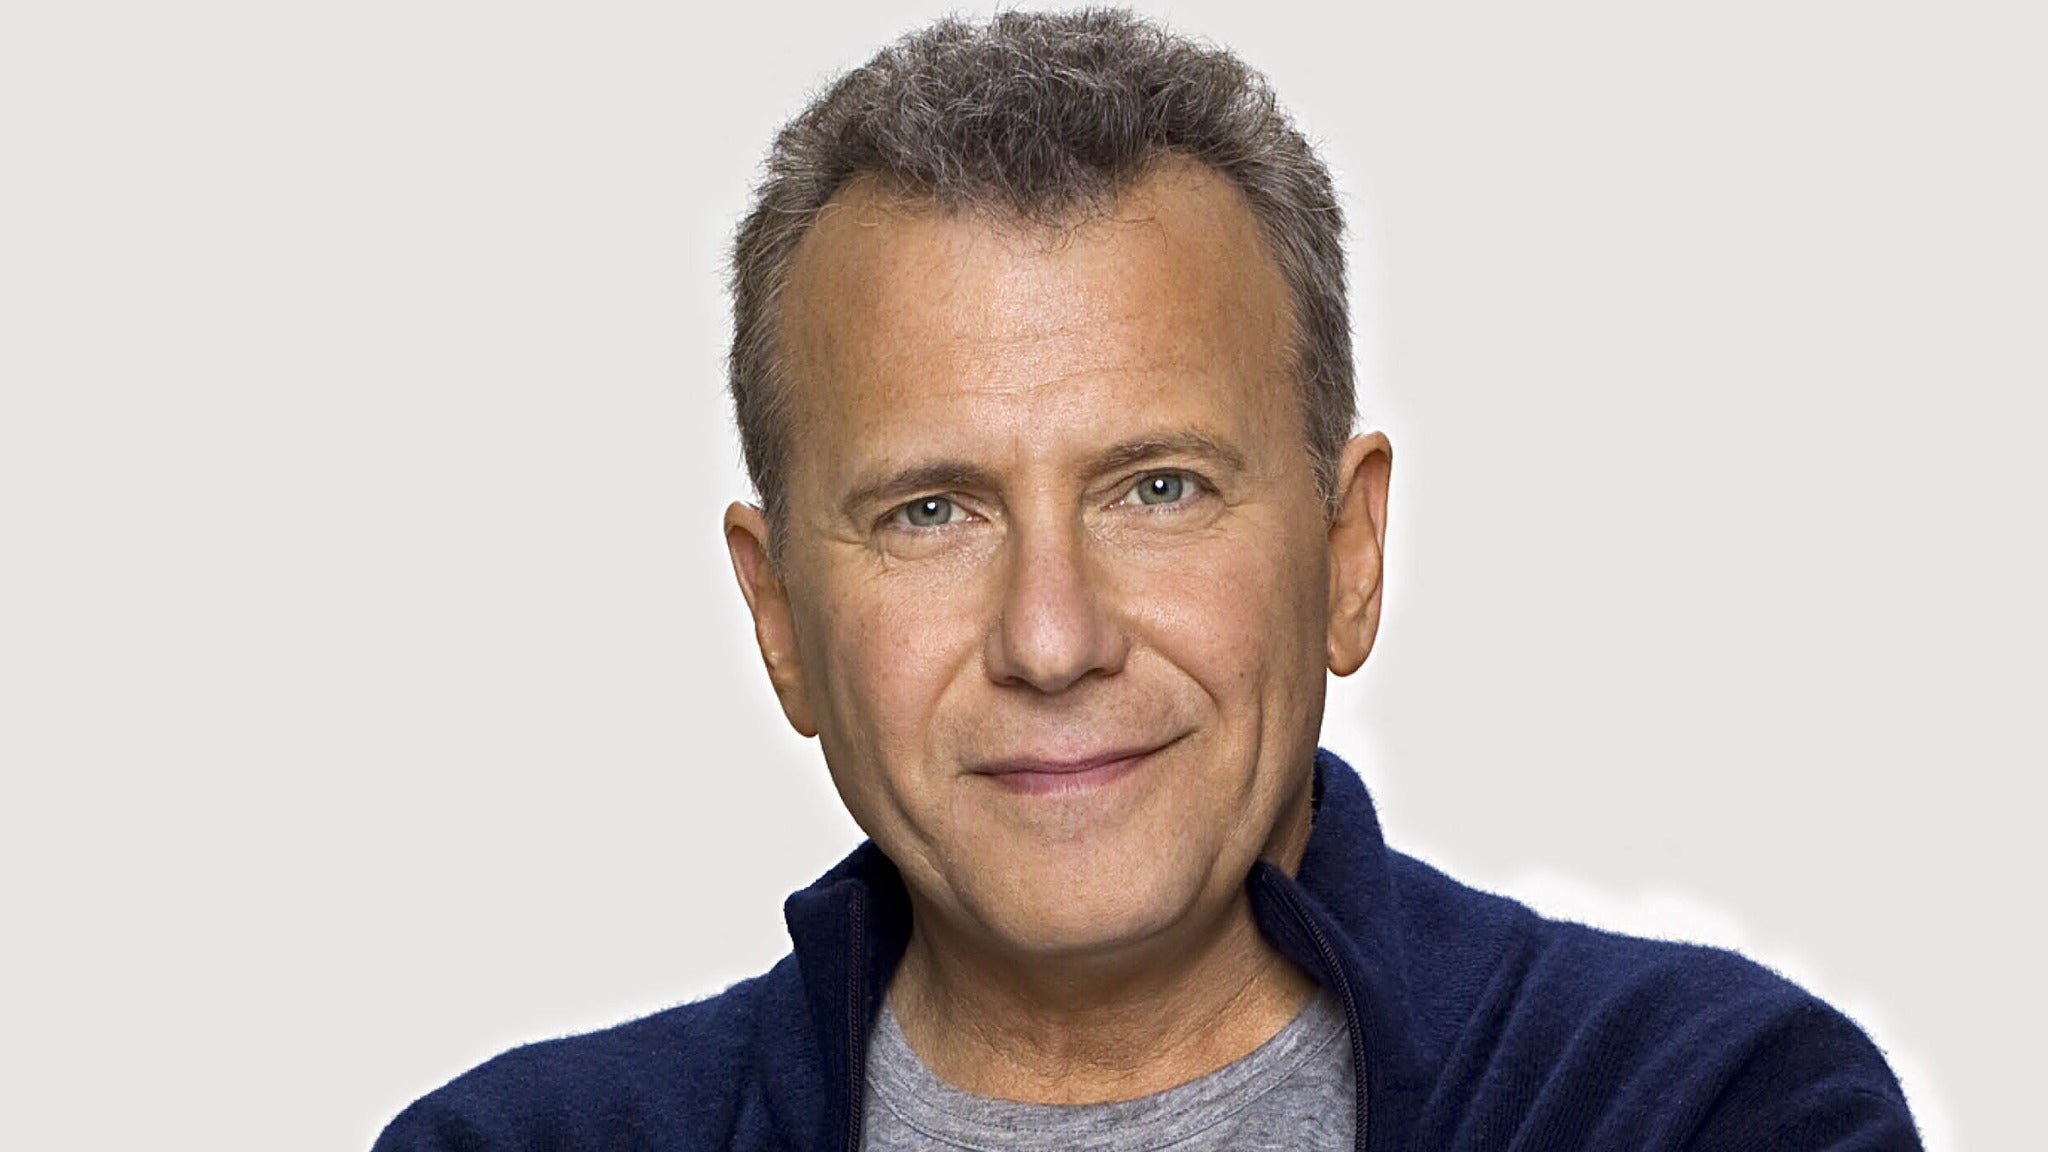 Paul Reiser at La Mirada Theatre for the Performing Arts